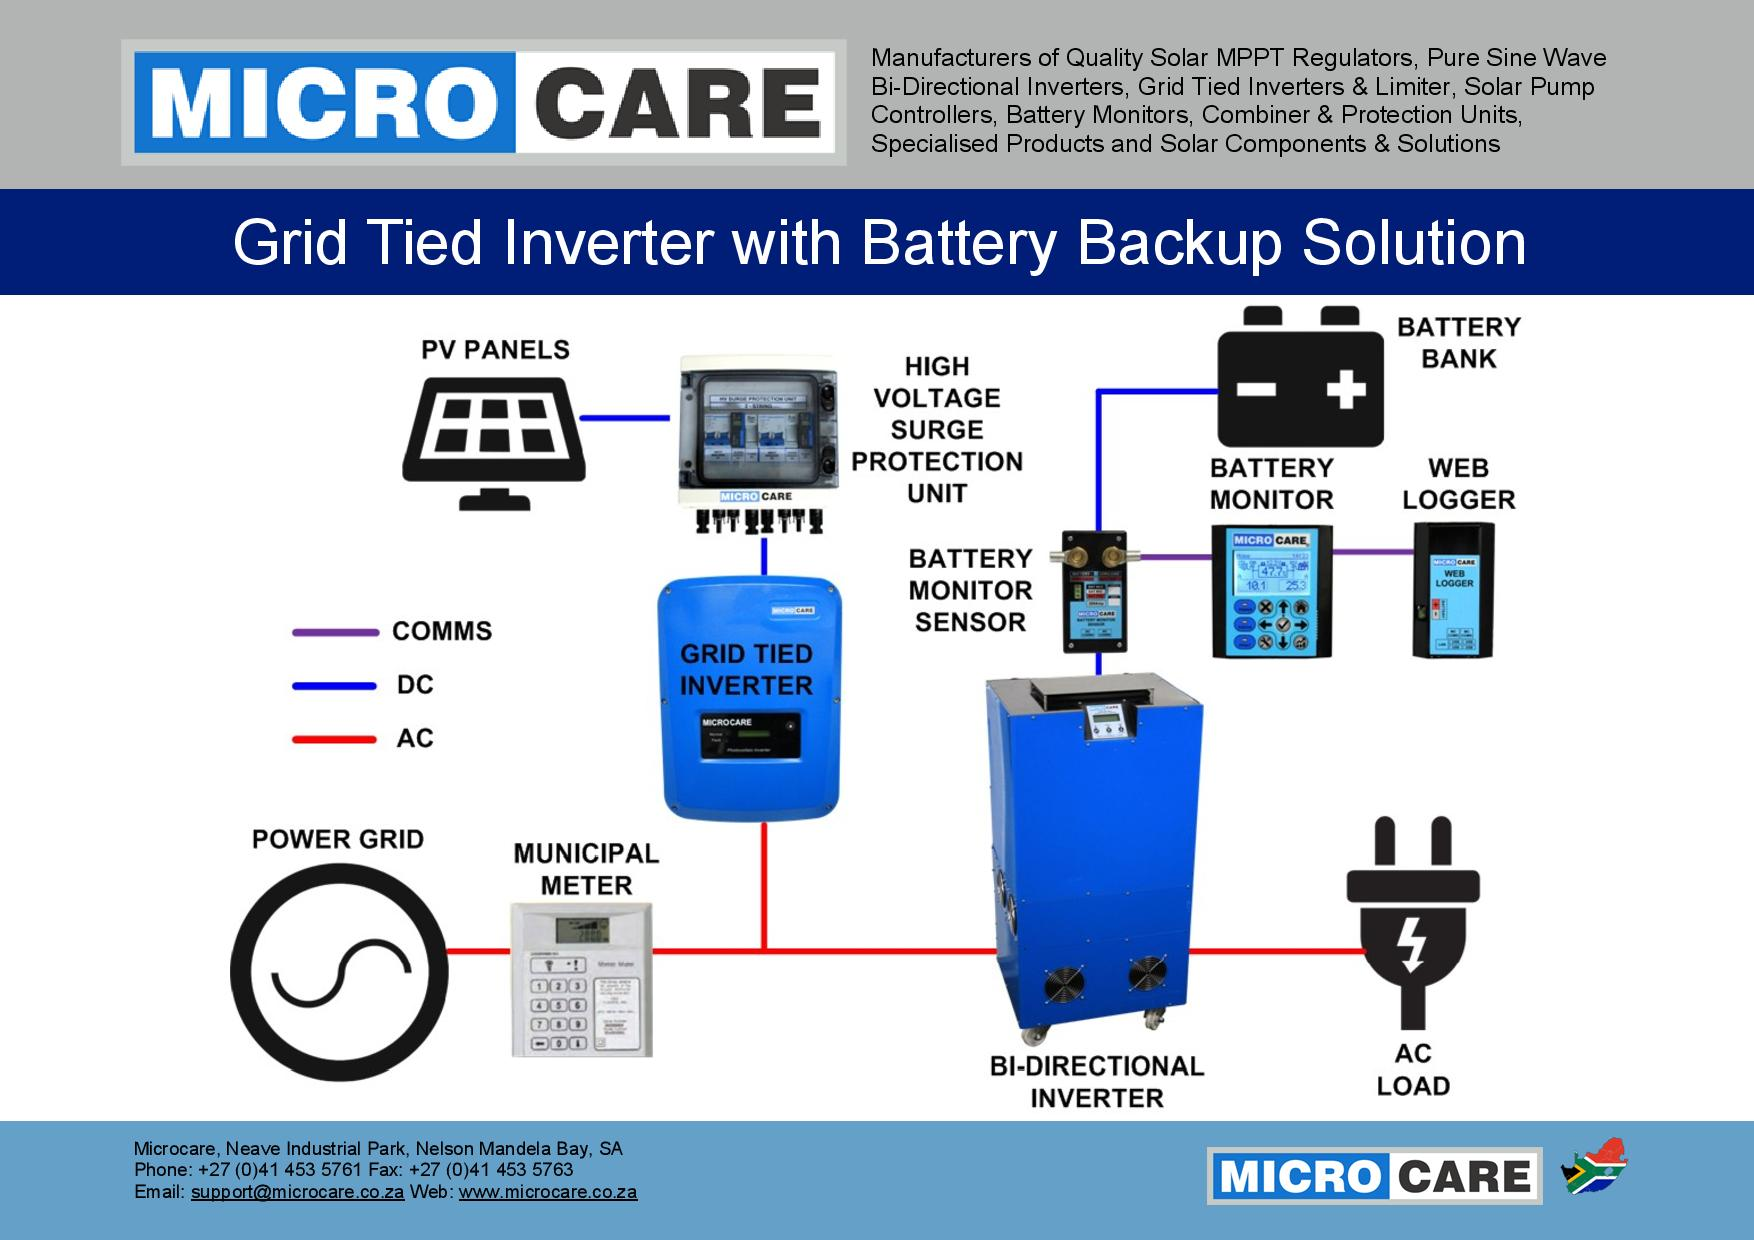 Microcare Grid Tied Inverter with Battery Backup Solution